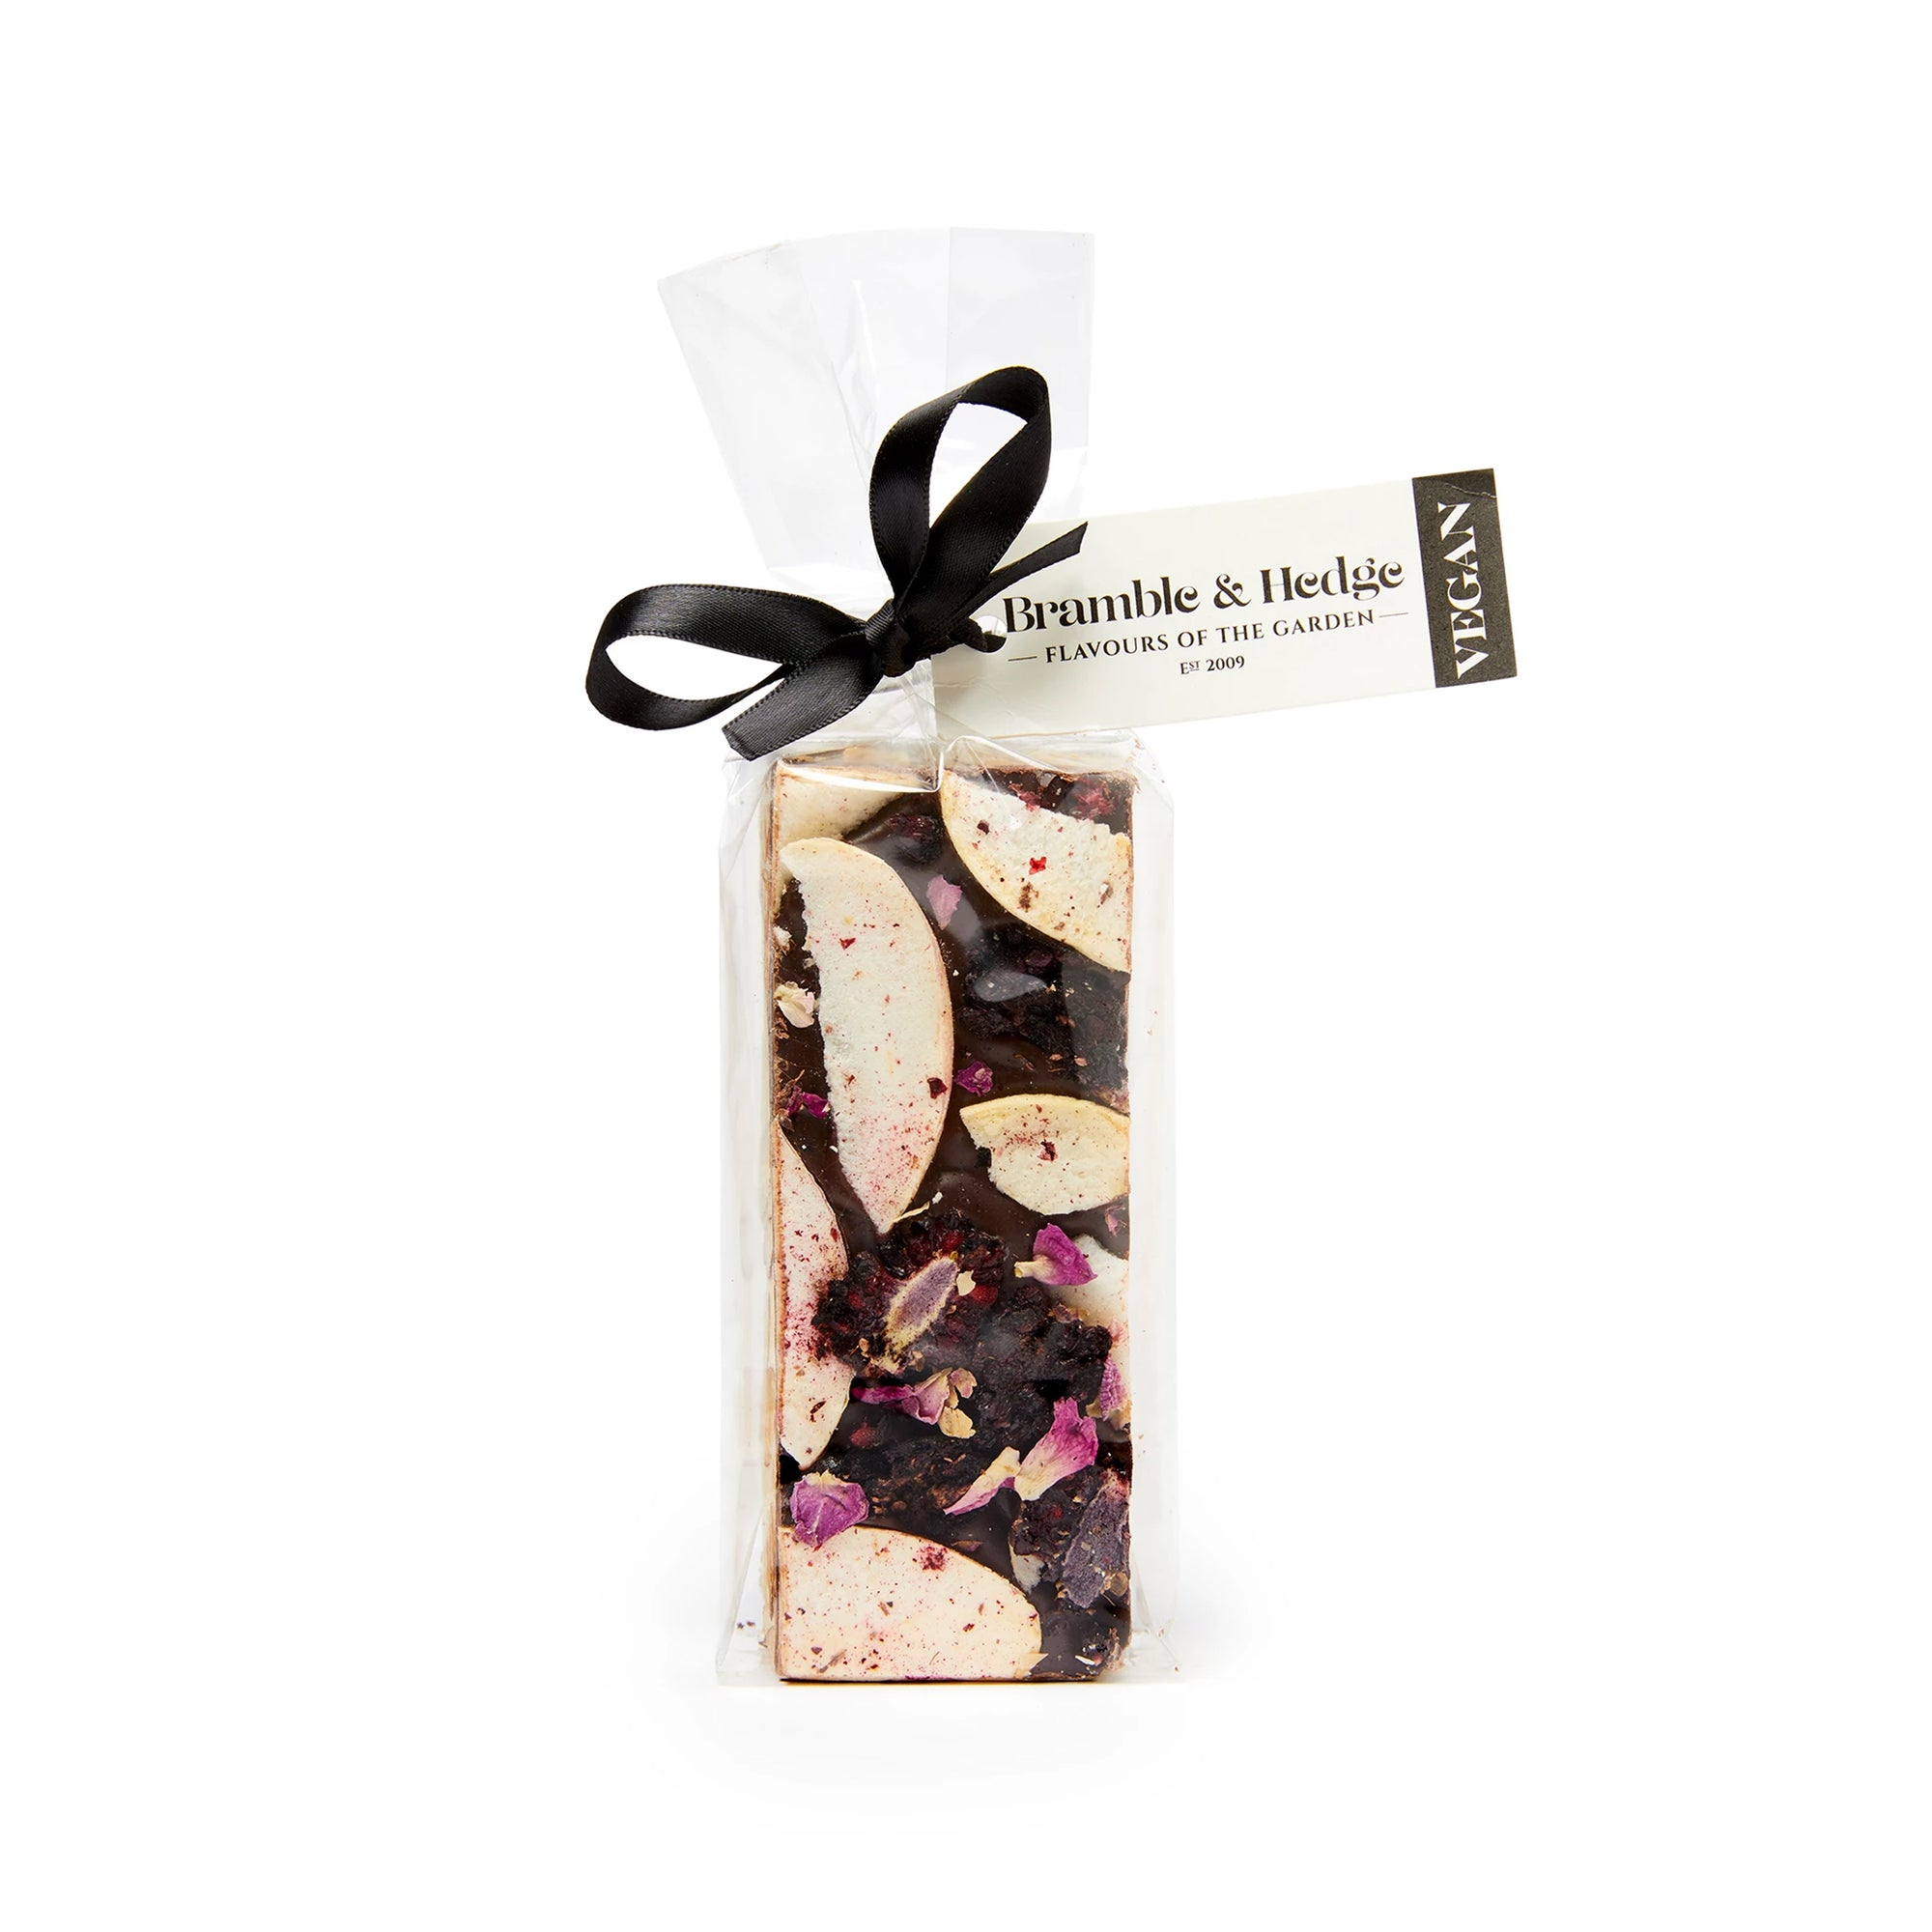 Bramble & Hedge - Vegan Nougat - Apple & Blackberry 150g